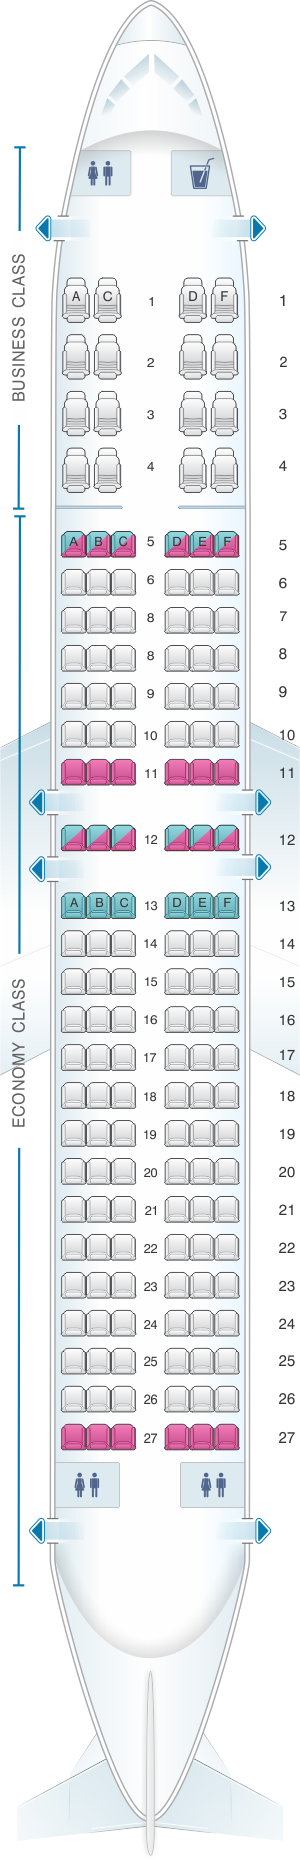 Seat map for Caribbean Airlines Boeing B737 800